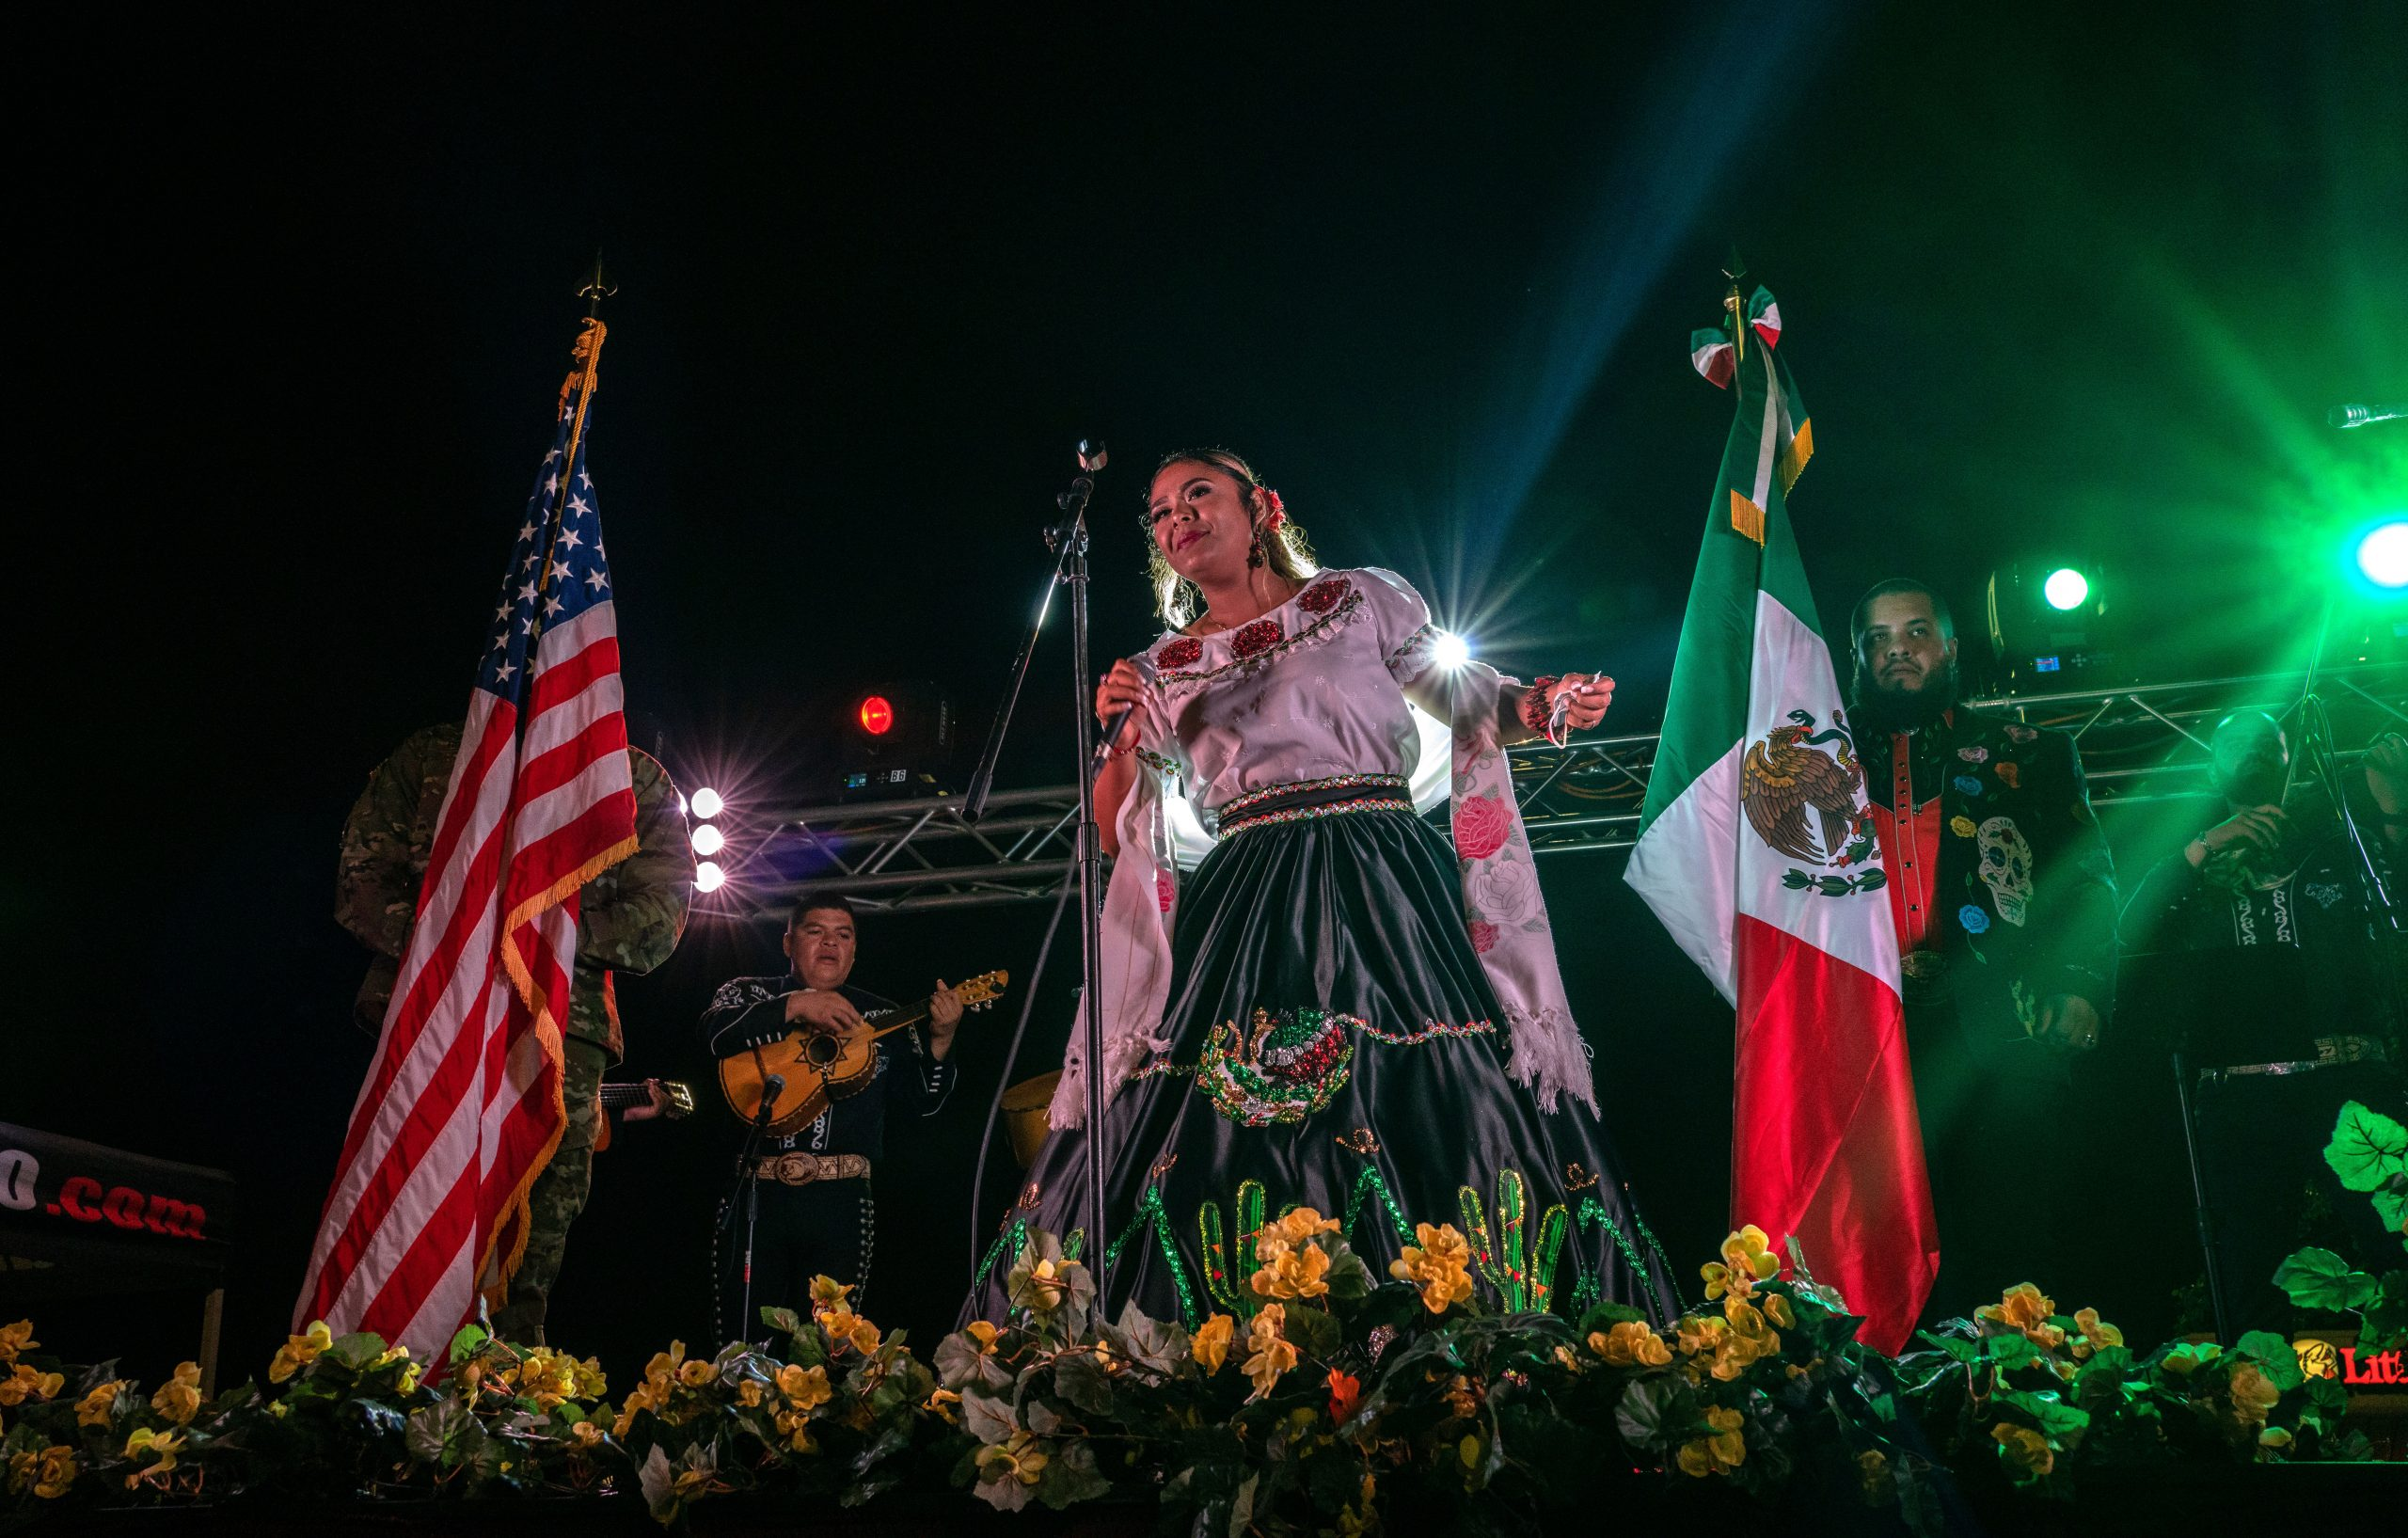 At the evening event, Elena Jimenez sings the Mexican National Anthem during a ceremony for Mexican independence day at Plaza Mariachi. (Photo: John Partipilo)